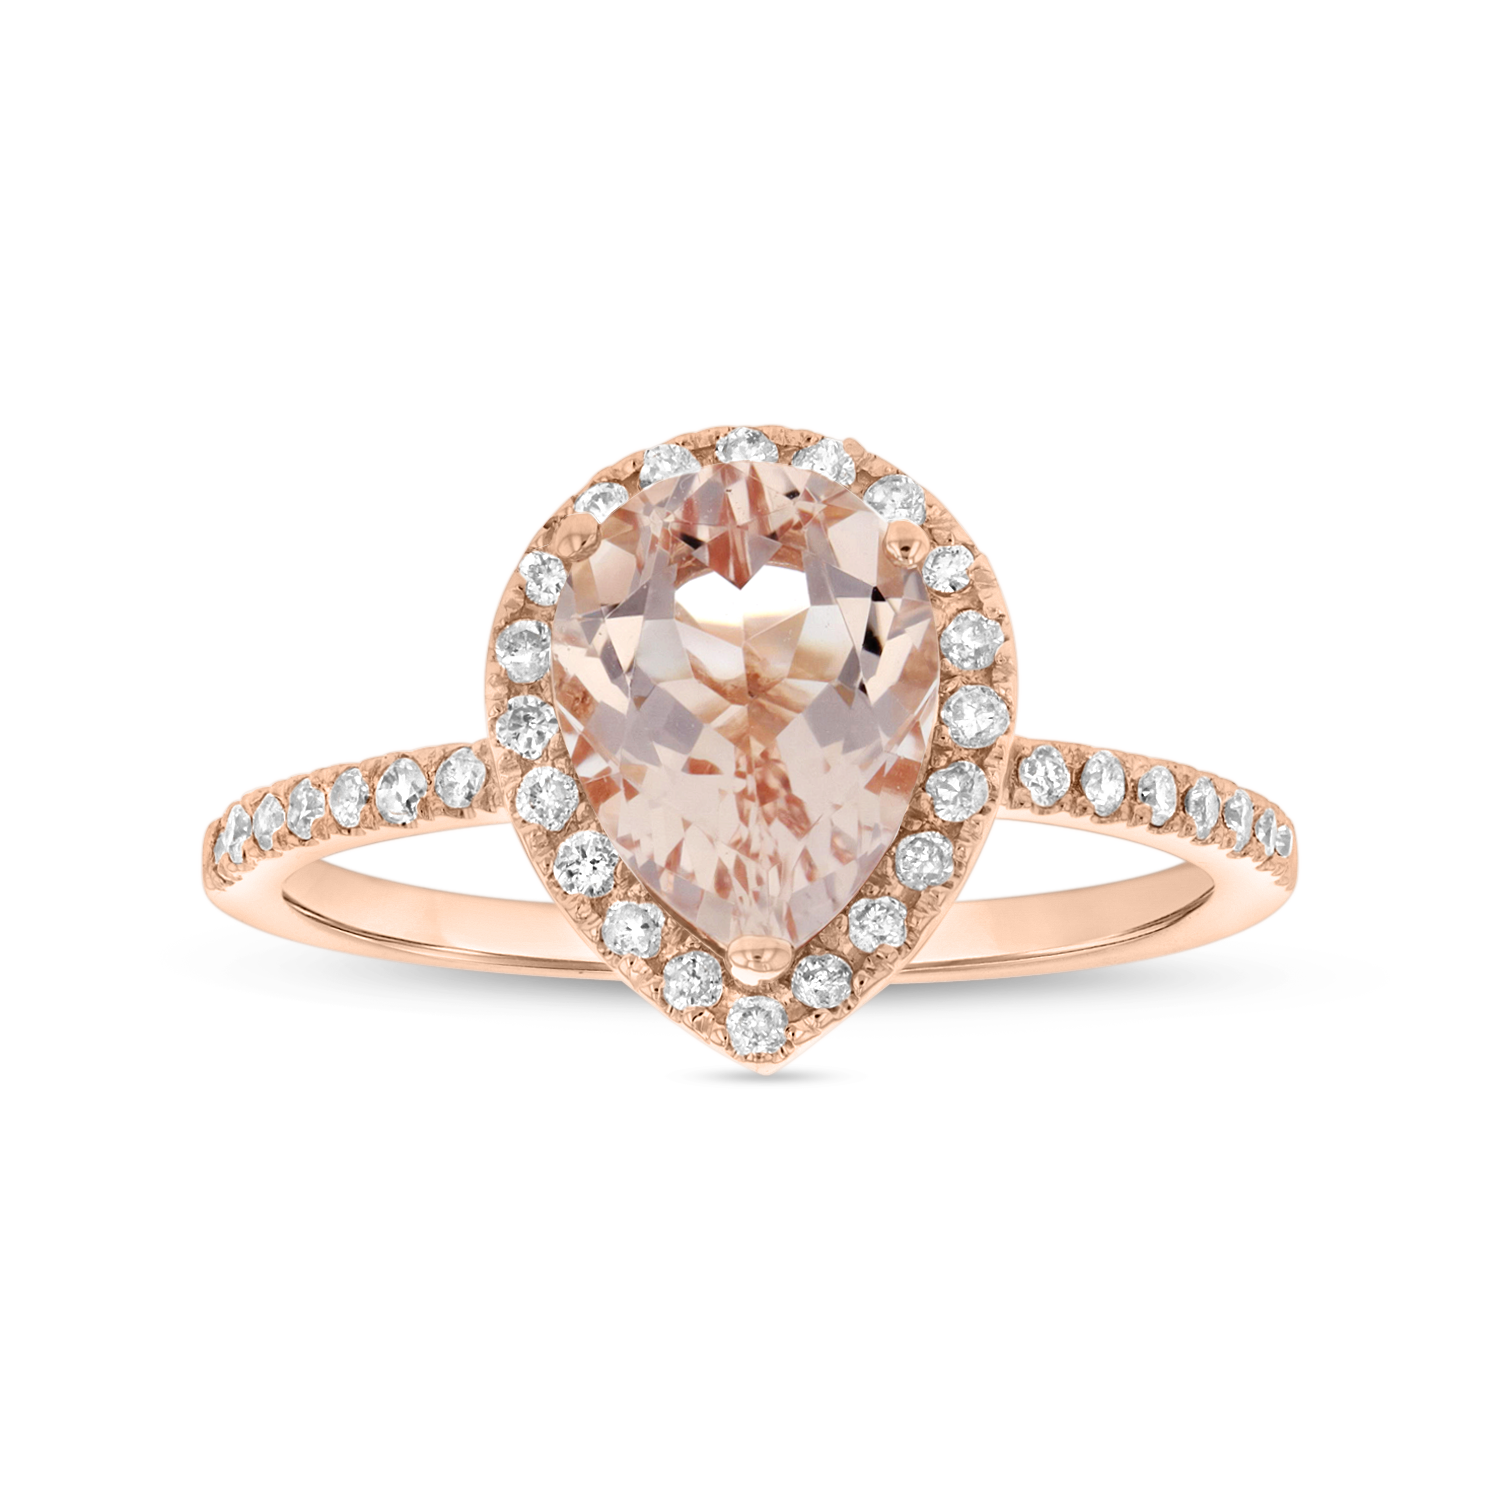 View 7X5 mm Pear Shaped Monganite and  Diamond Ring in 14k Rose Gold